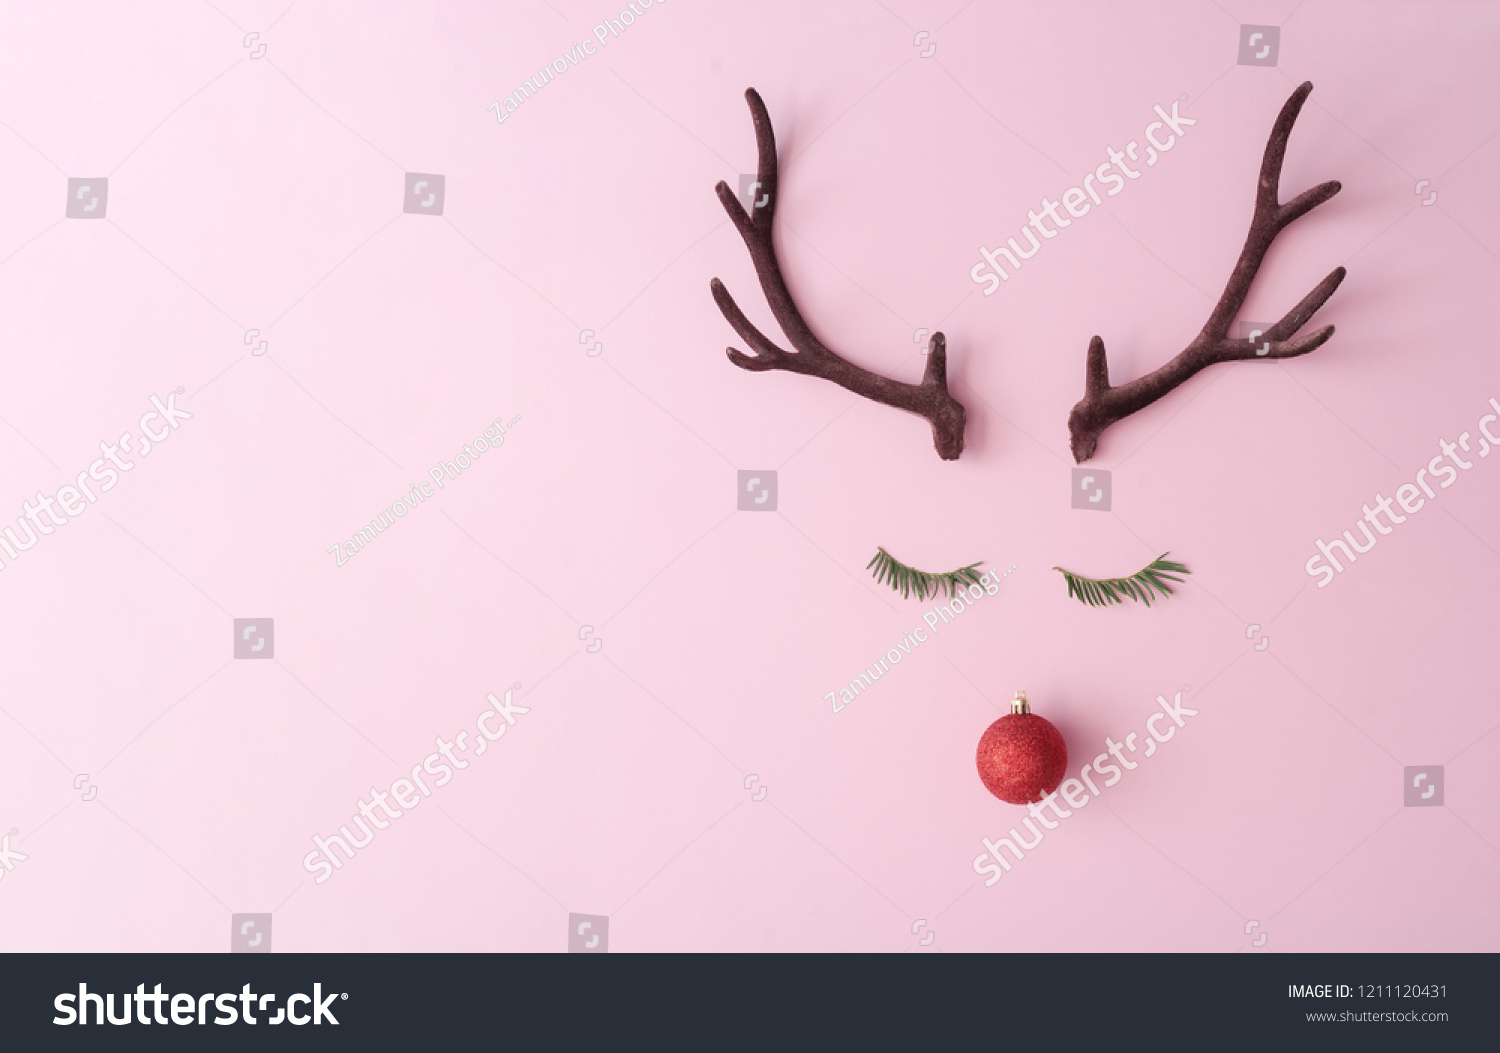 Christmas reindeer concept made of evergreen fir, red bauble decoration and antlers on pastel pink background. Minimal winter holidays idea. Flat lay top view composition. #1211120431